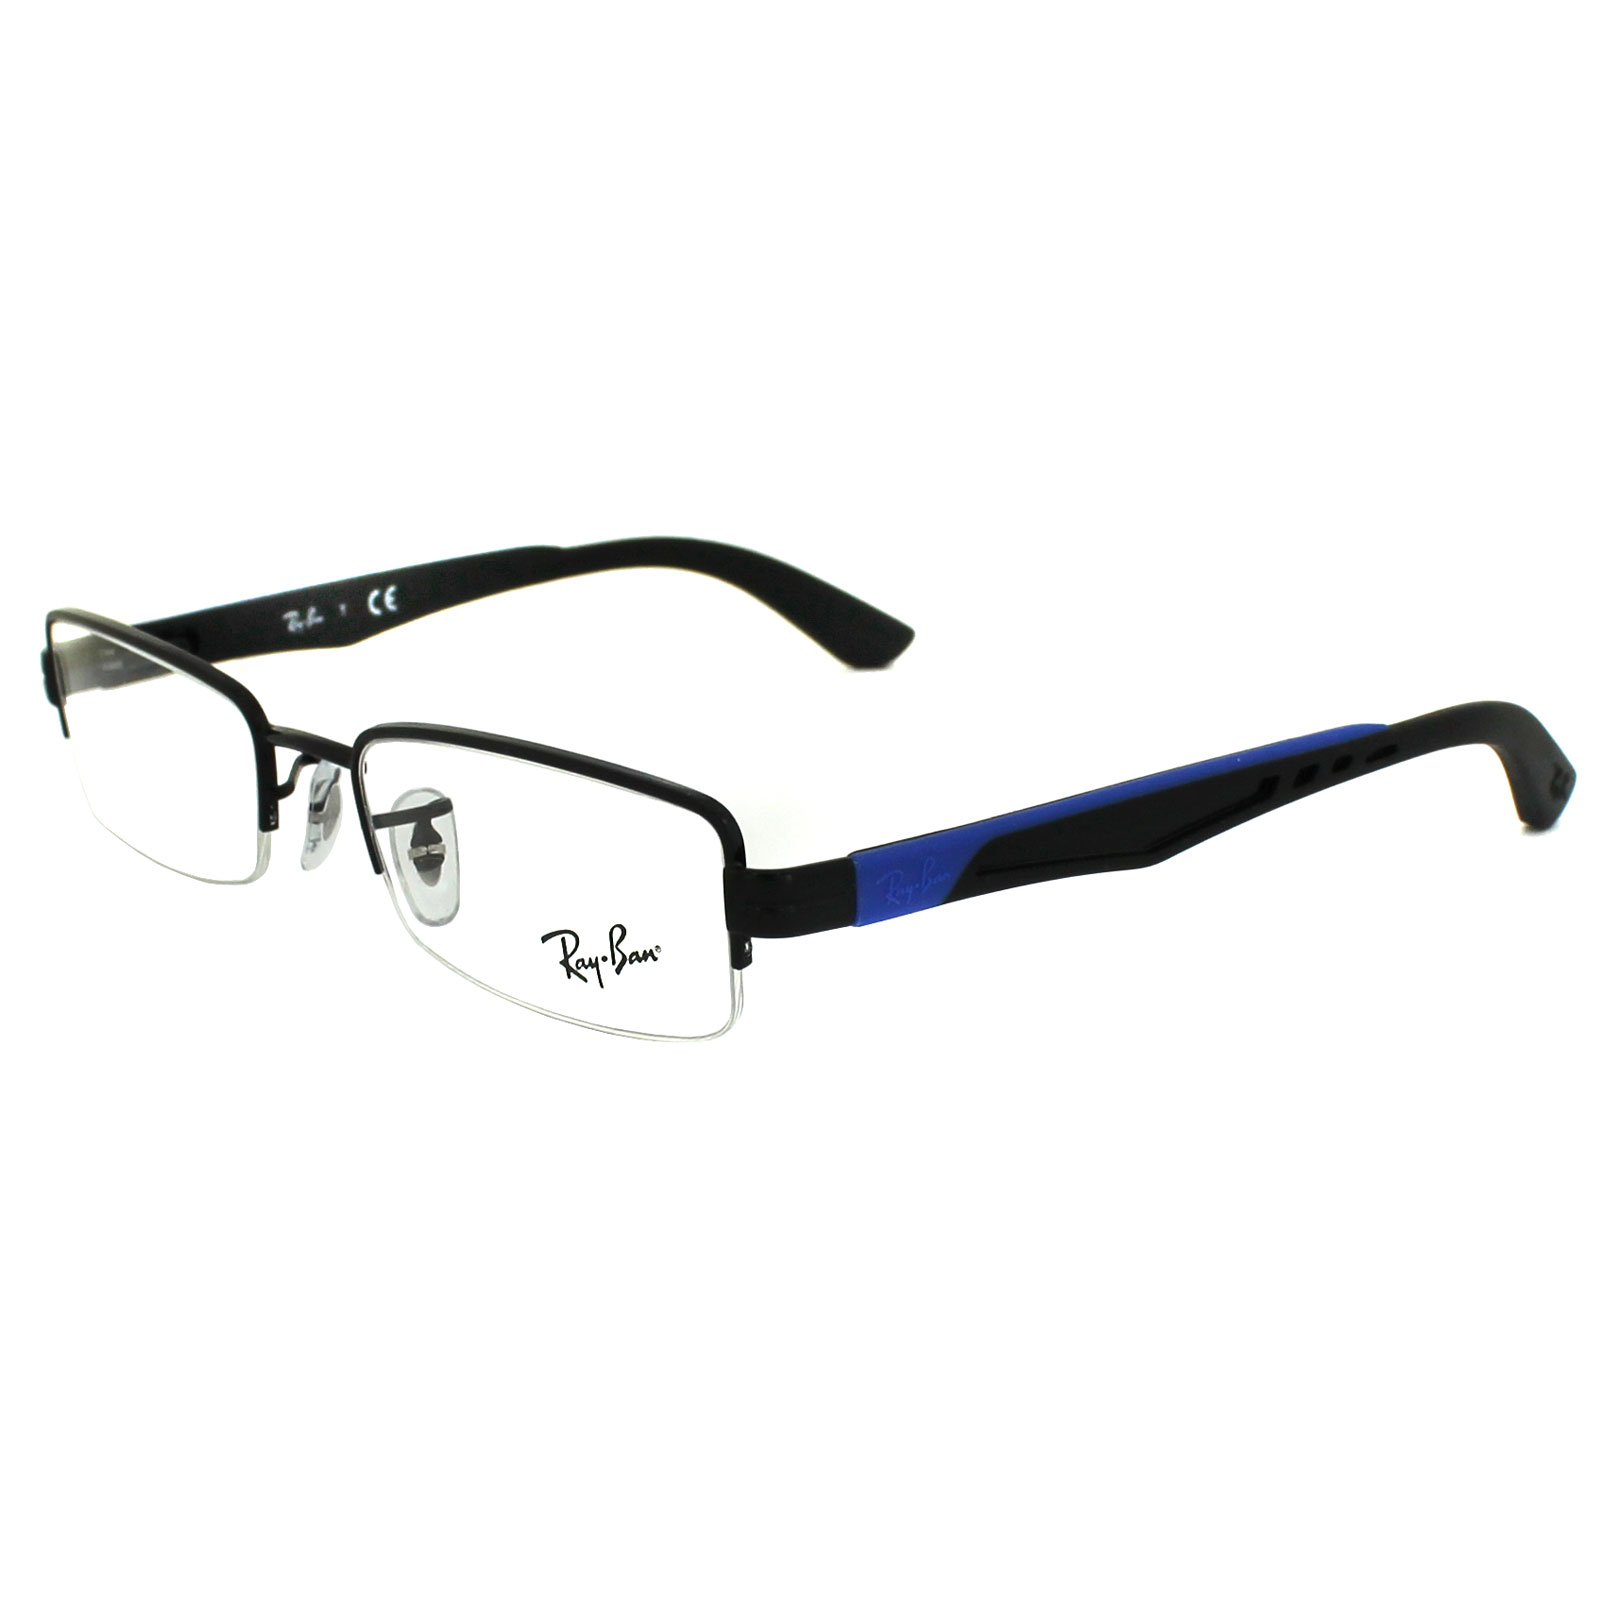 Ray-Ban Glasses Frames 6264 2509 Black Blue 49mm eBay